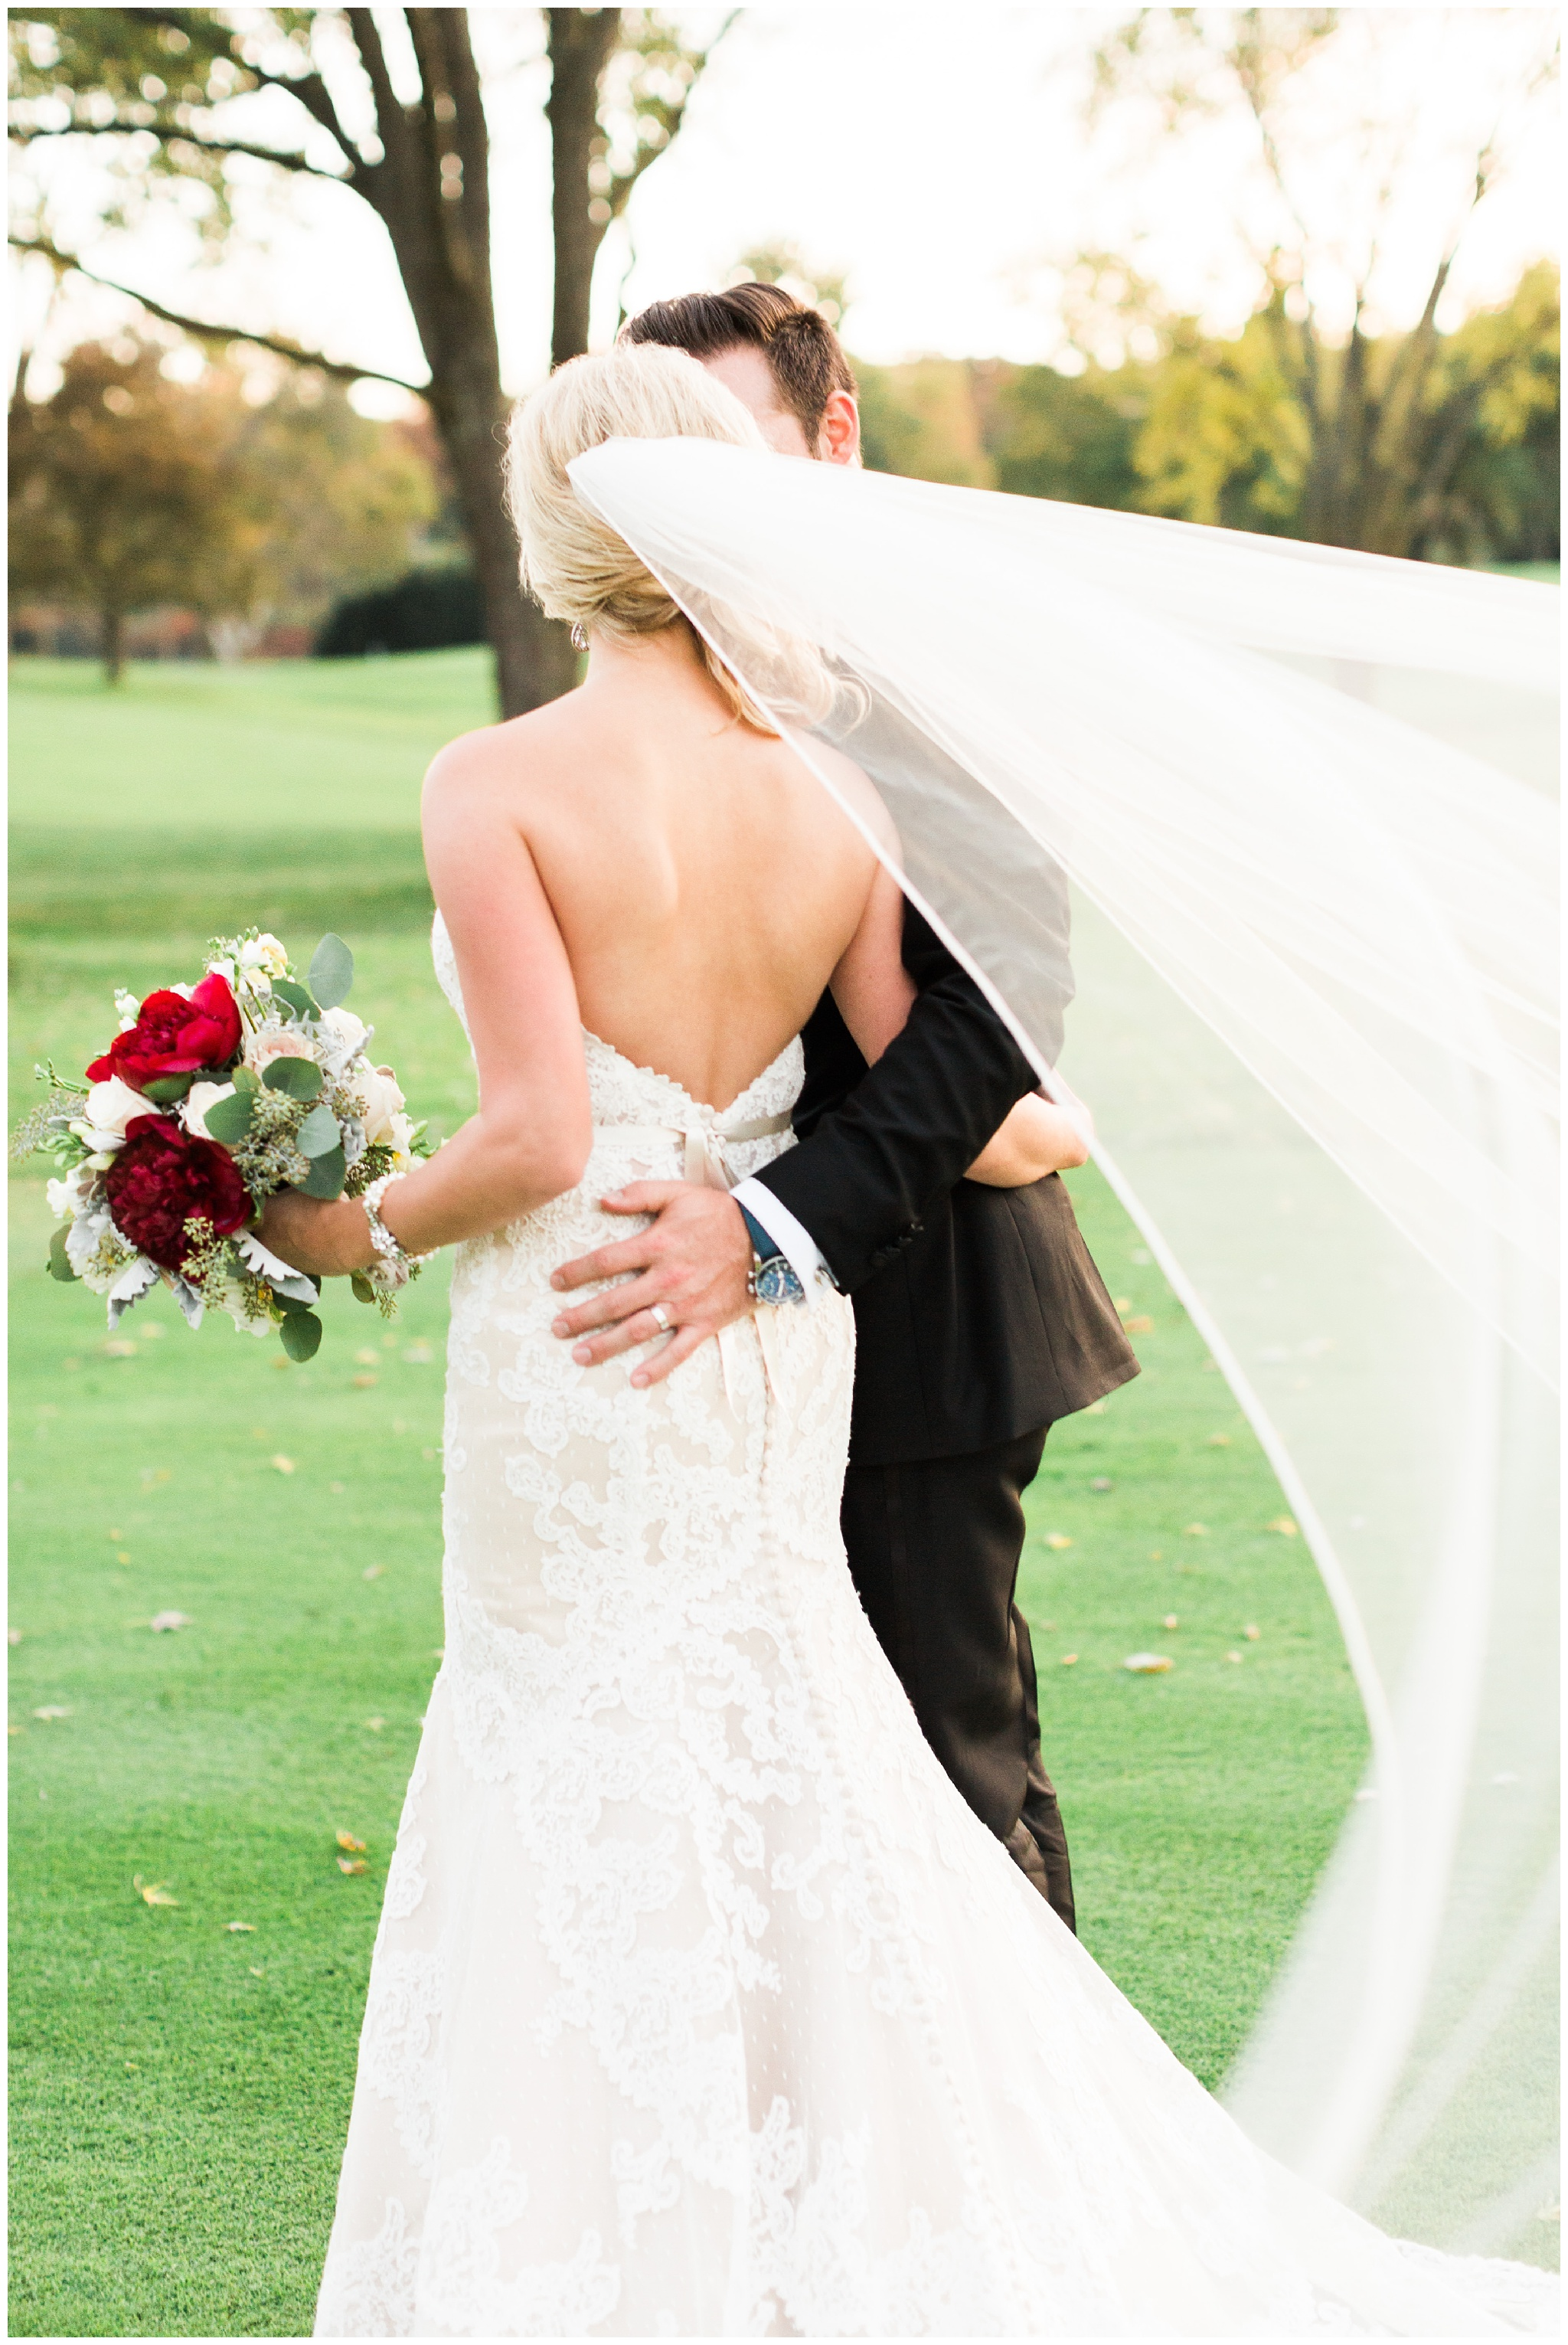 RebeccaHaleyPhotography_BarringtonPhotographer_ChicagoPhotographer_ChicagoWedding_0058.jpg